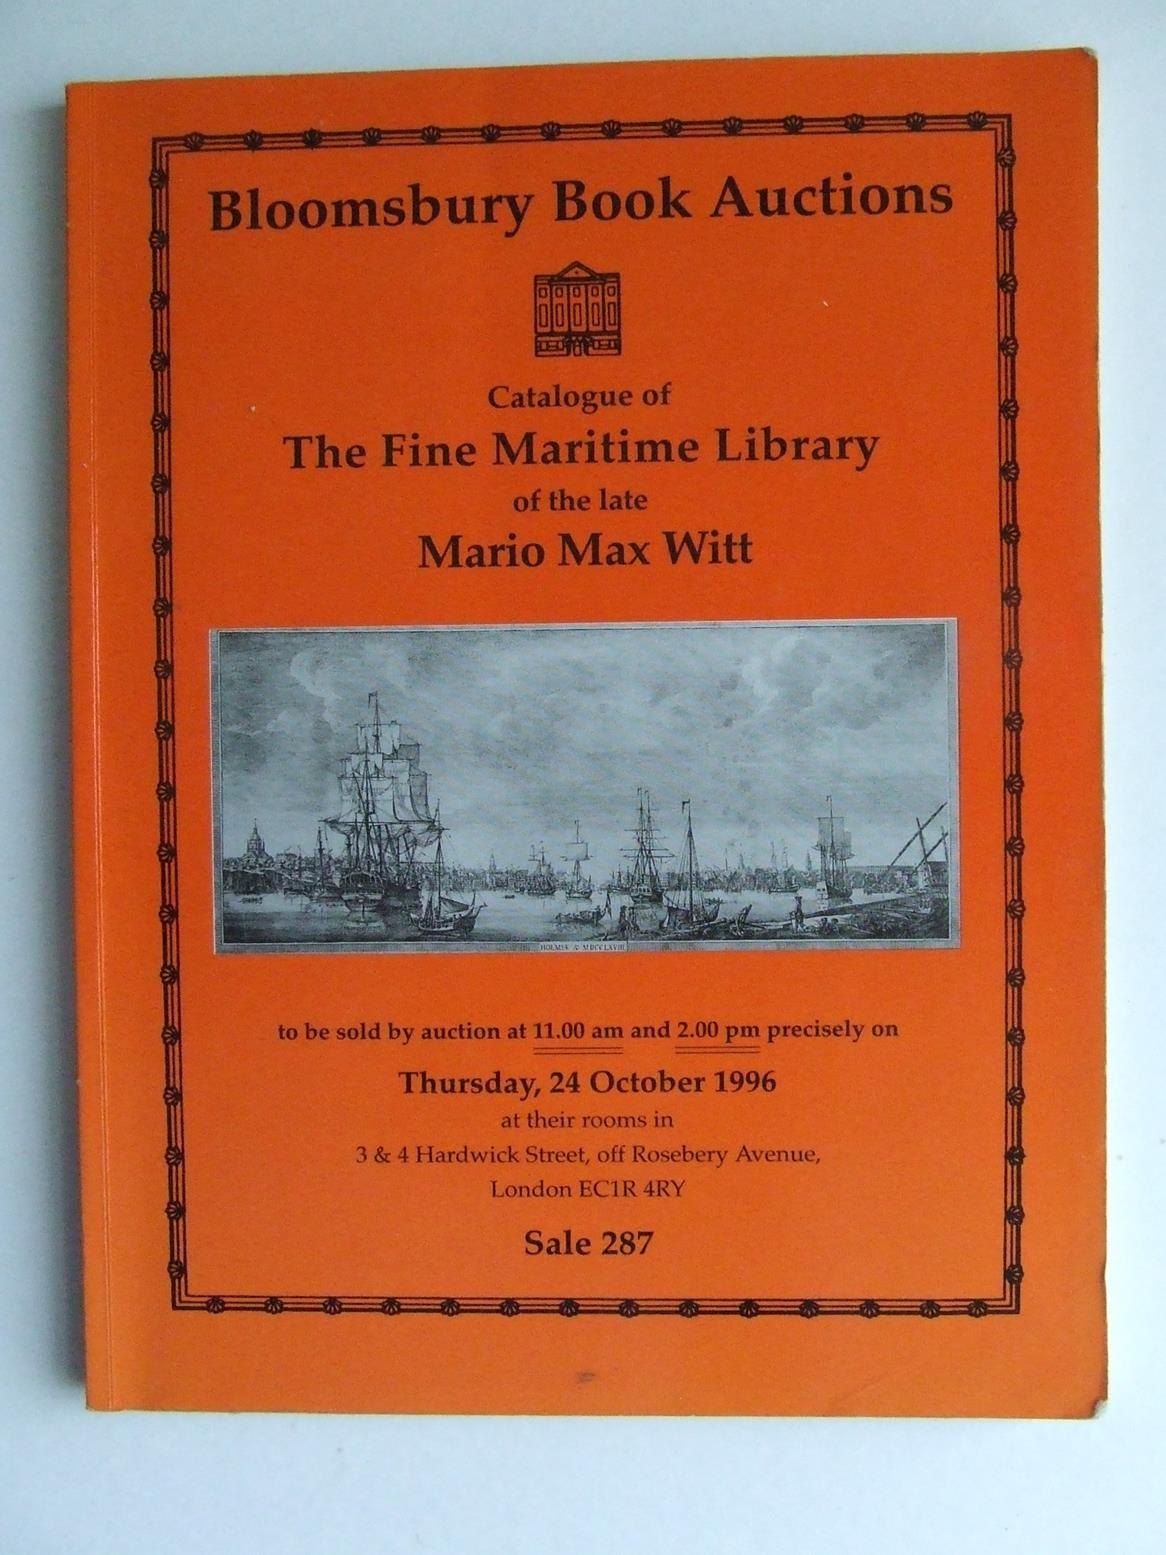 Catalogue of the Fine Maritime Library of the late Mario Max Witt